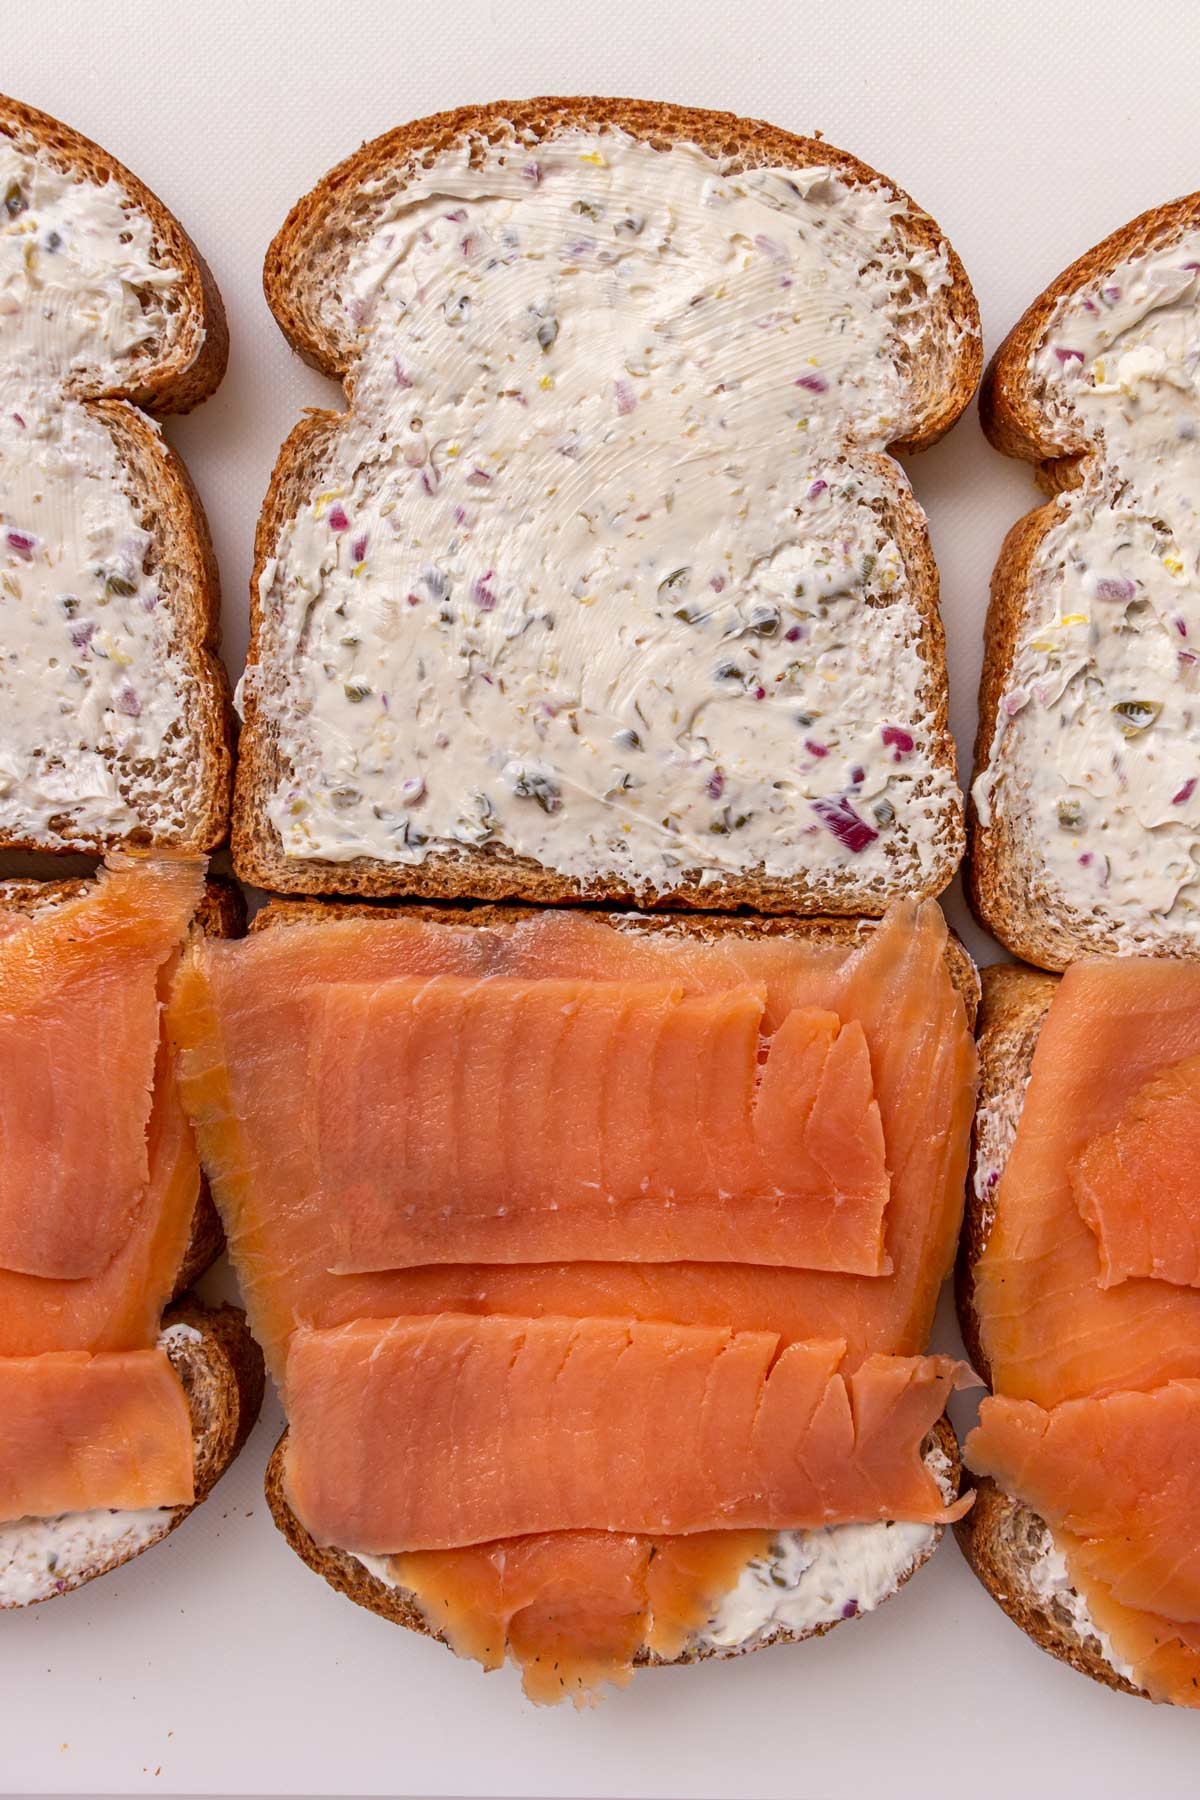 Assembling a smoked salmon sandwich with cream cheese on a white surface.